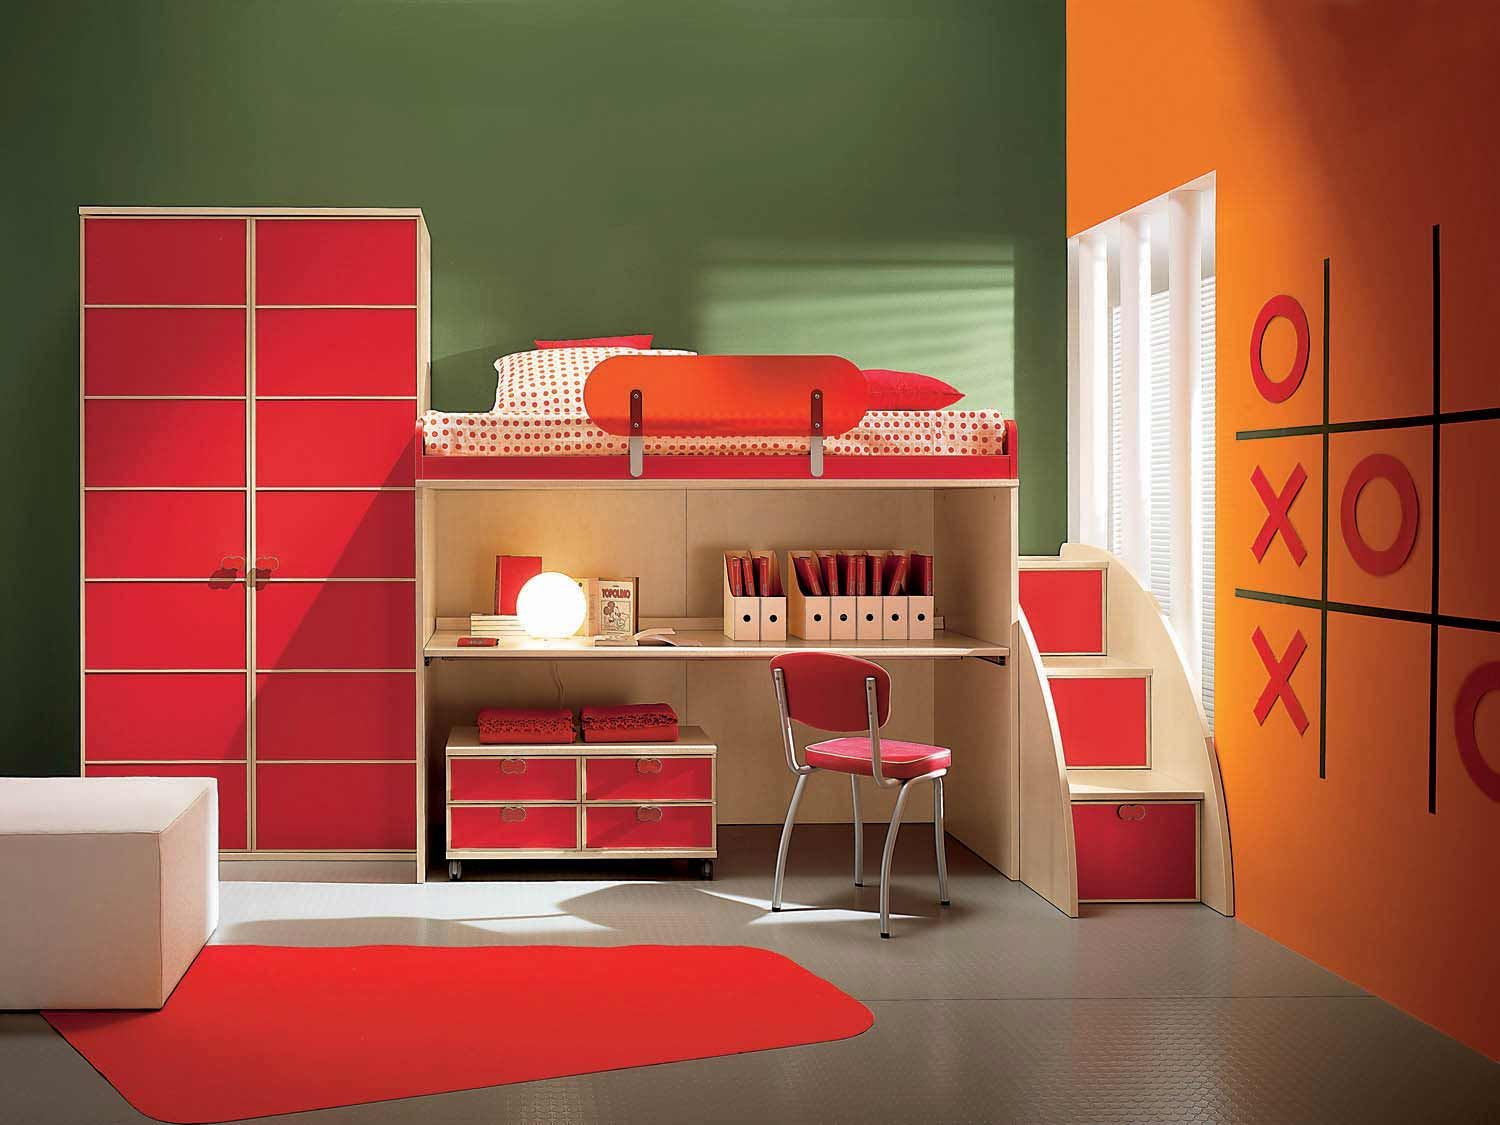 Cool Beds For Small Rooms With Limited Storage: Kids Bedroom Ideas For Small Spaces With Red Closet